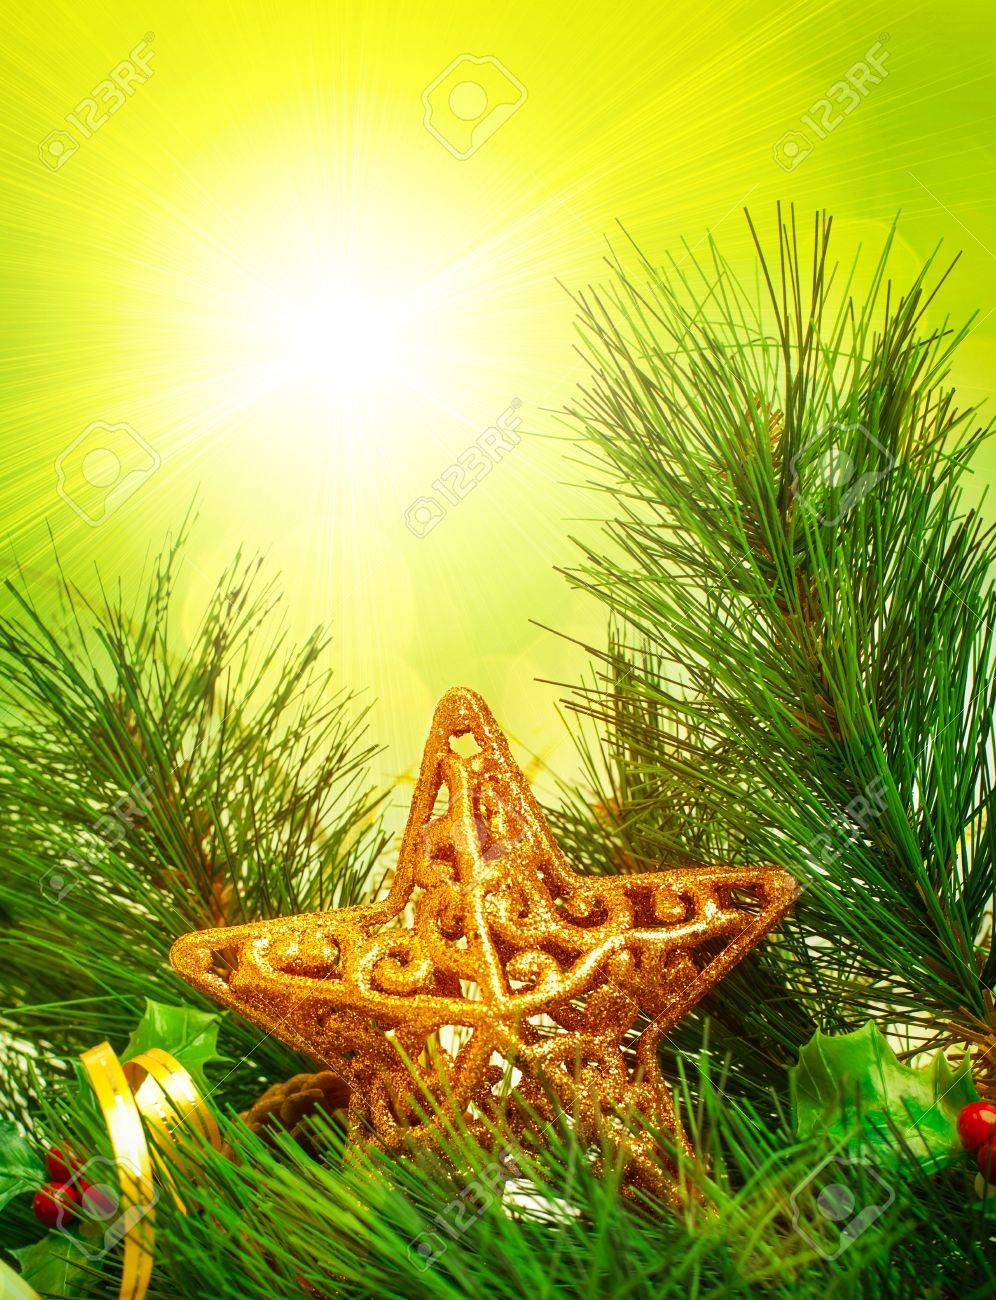 picture of christmastime decorative border branch of christmas tree decorated with golden star and ribbon